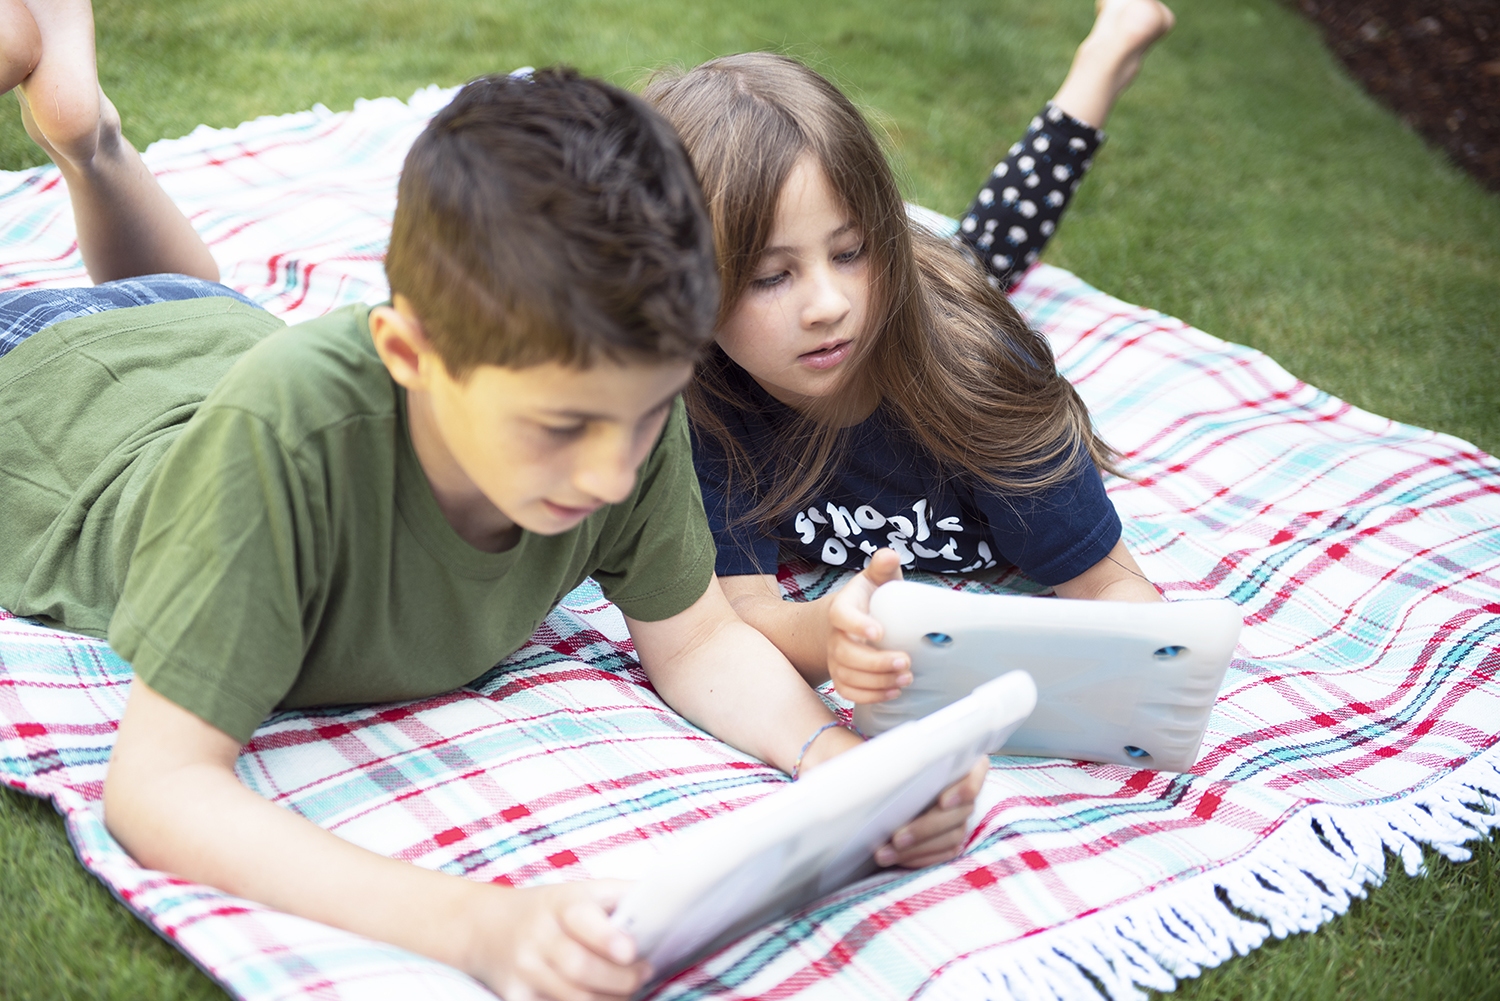 image showing two children on a blanket looking at tablets